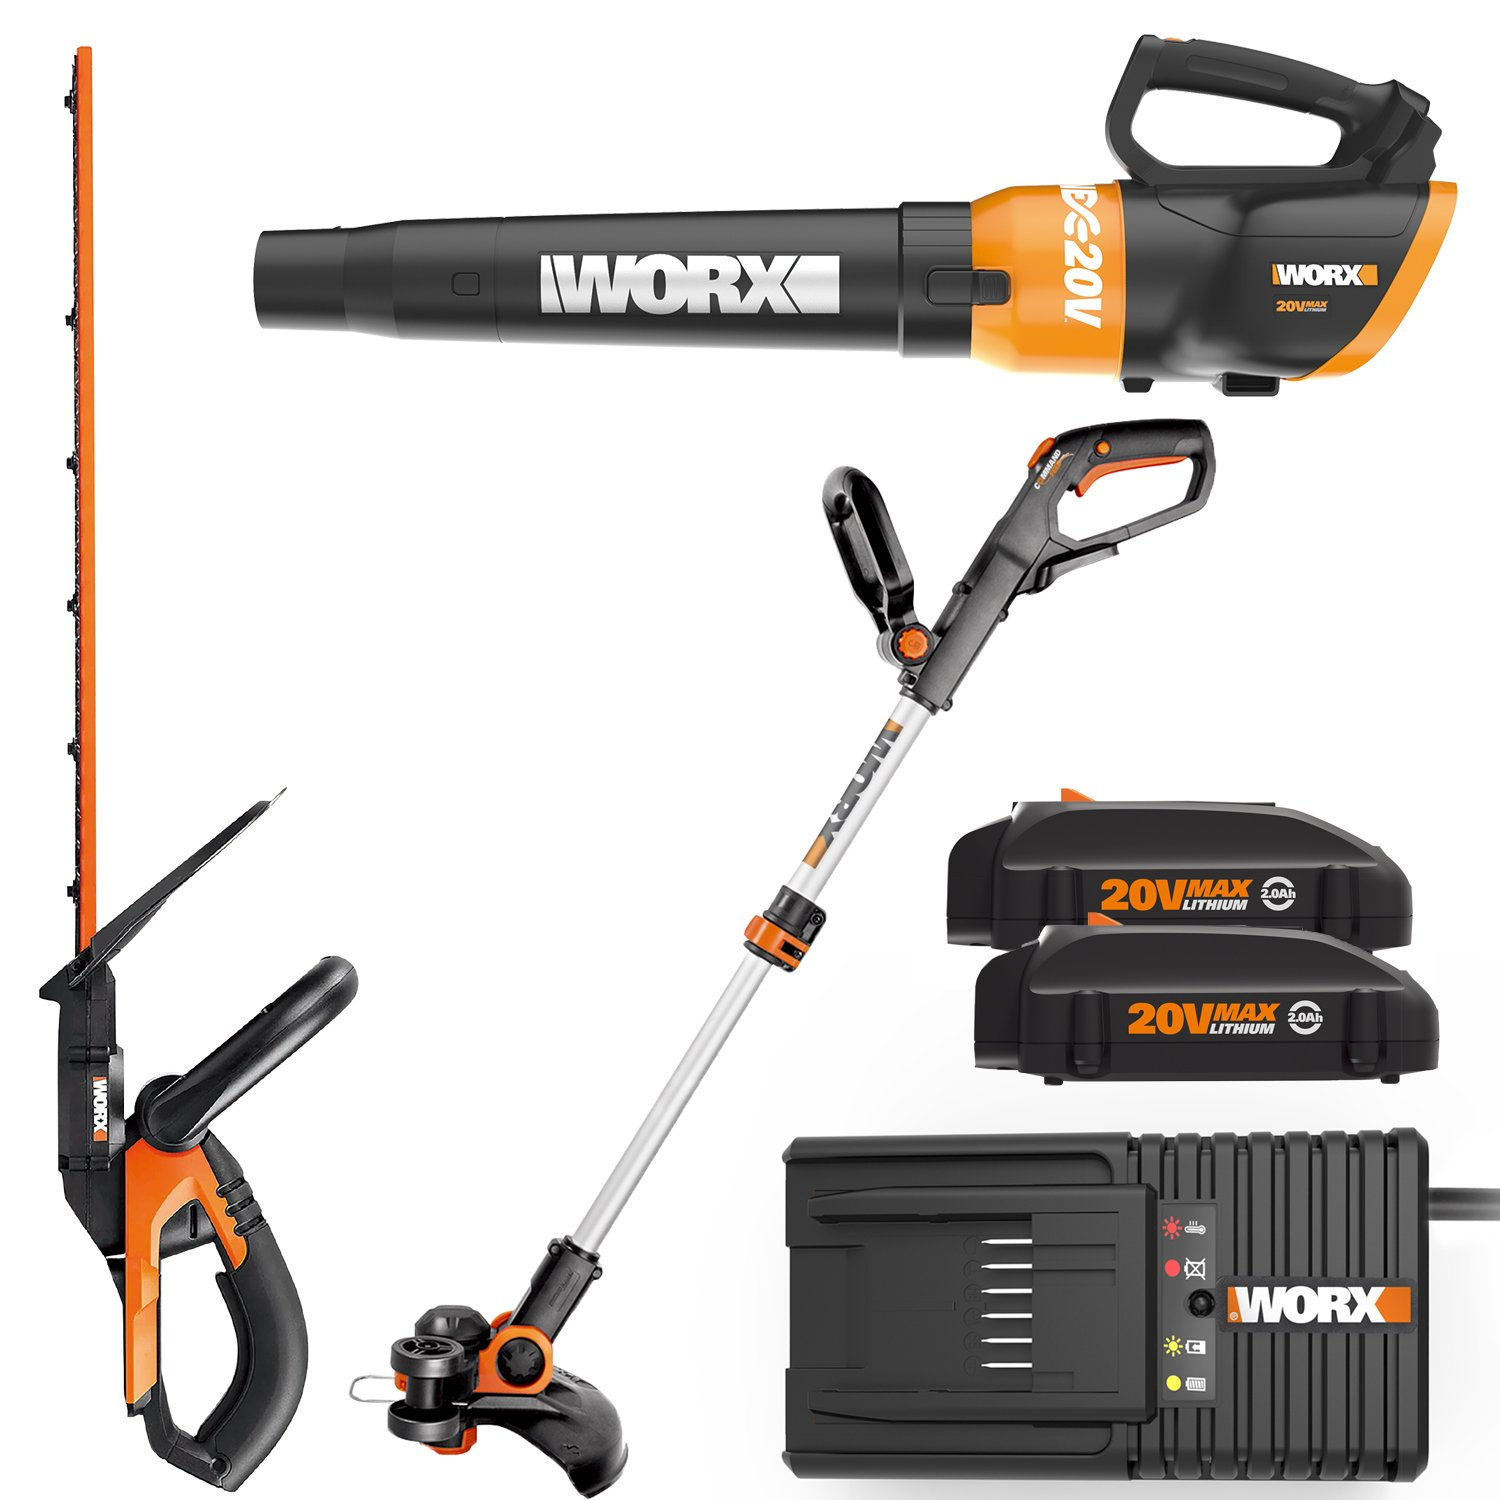 Worx WO7042 20V Grass Trimmer/Edger, Hedge Trimmer, and Turbine Blower Combo Kit with Two 20V Batteries